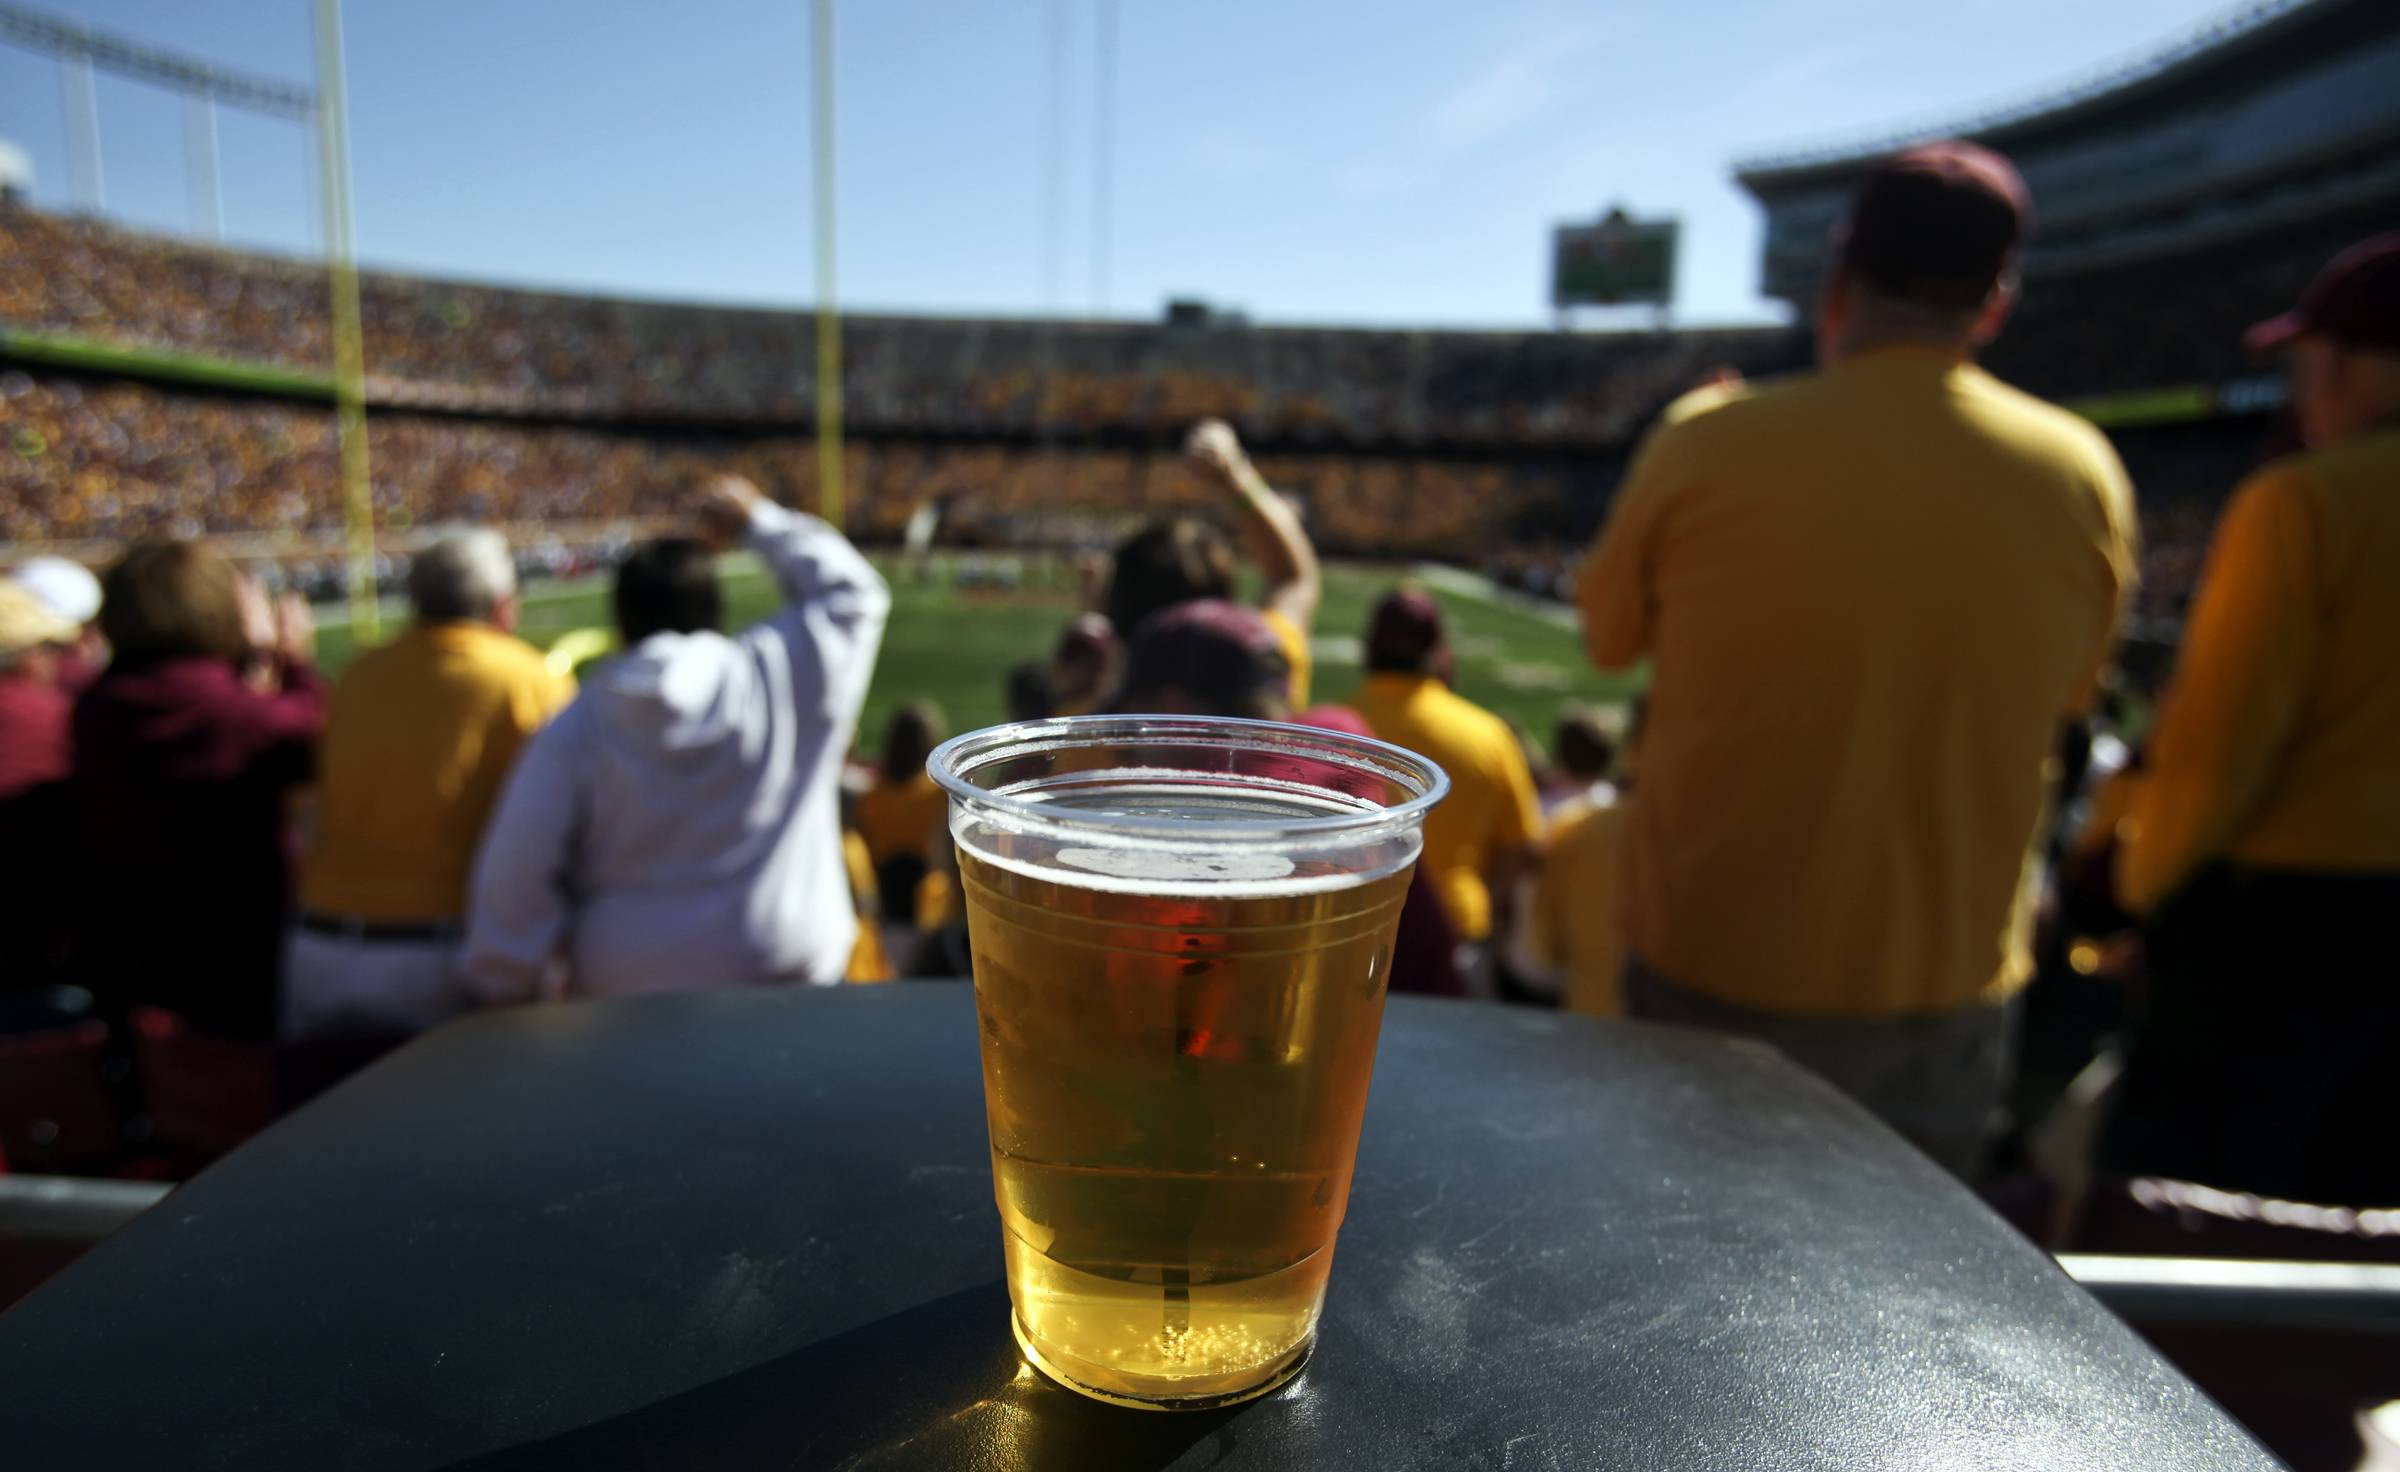 A beer sits atop a garbage can as Minnesota fans cheer a first quarter play against New Hampshire at TCF Bank Stadium in Minneapolis, Minn. A growing number of schools are capitalizing on fans' taste for the suds by bringing the party inside, opening taps in concourses that traditionally have been alcohol-free zones.